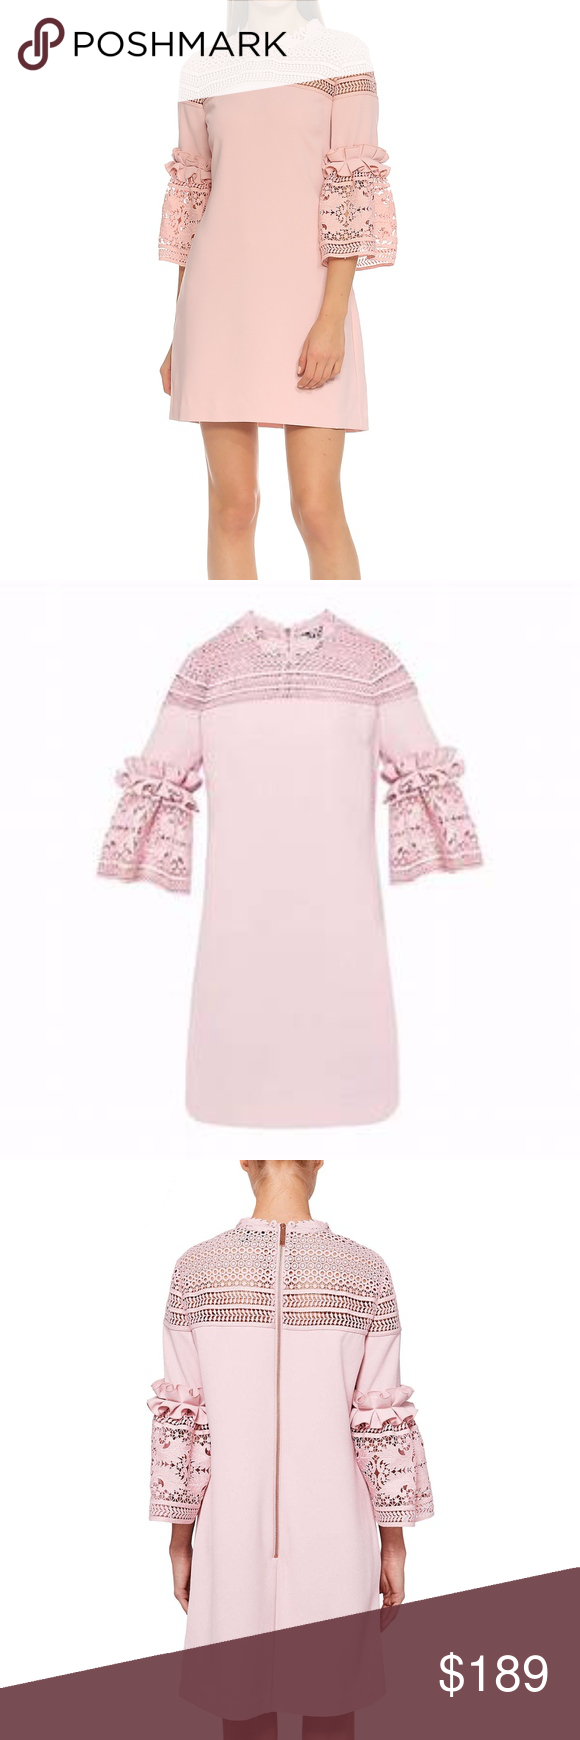 e7a296911 Ted Baker Lucila Lace Bell Sleeved Tunic Dress Ted Baker Lucila Lace Bell  Sleeved Tunic Dress